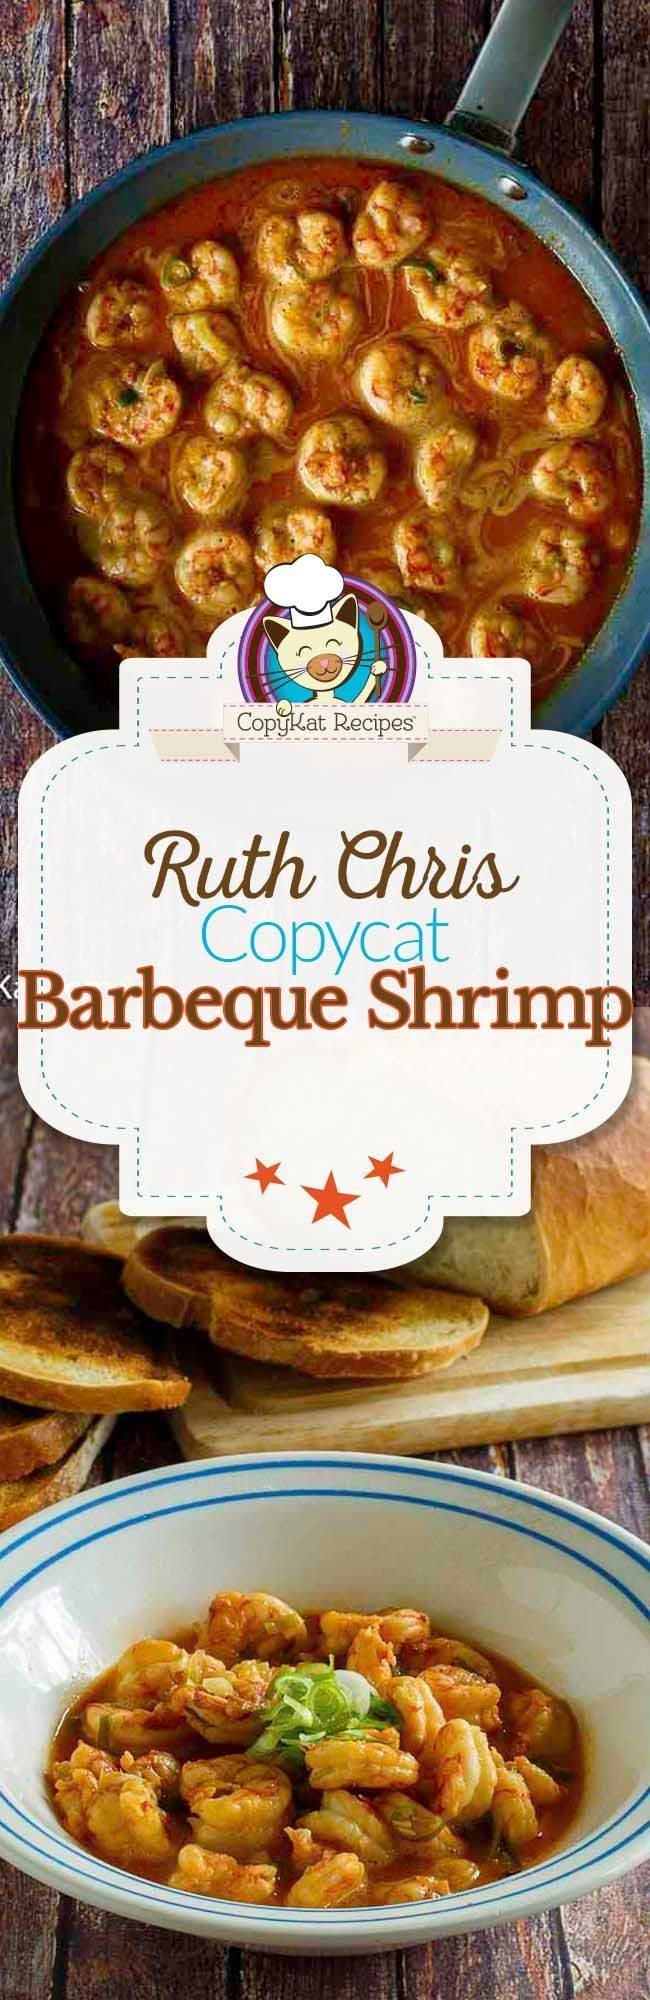 Make your own Ruth Chris Steakhouse Barbeque Shrimp at home with this easy copycat recipe.